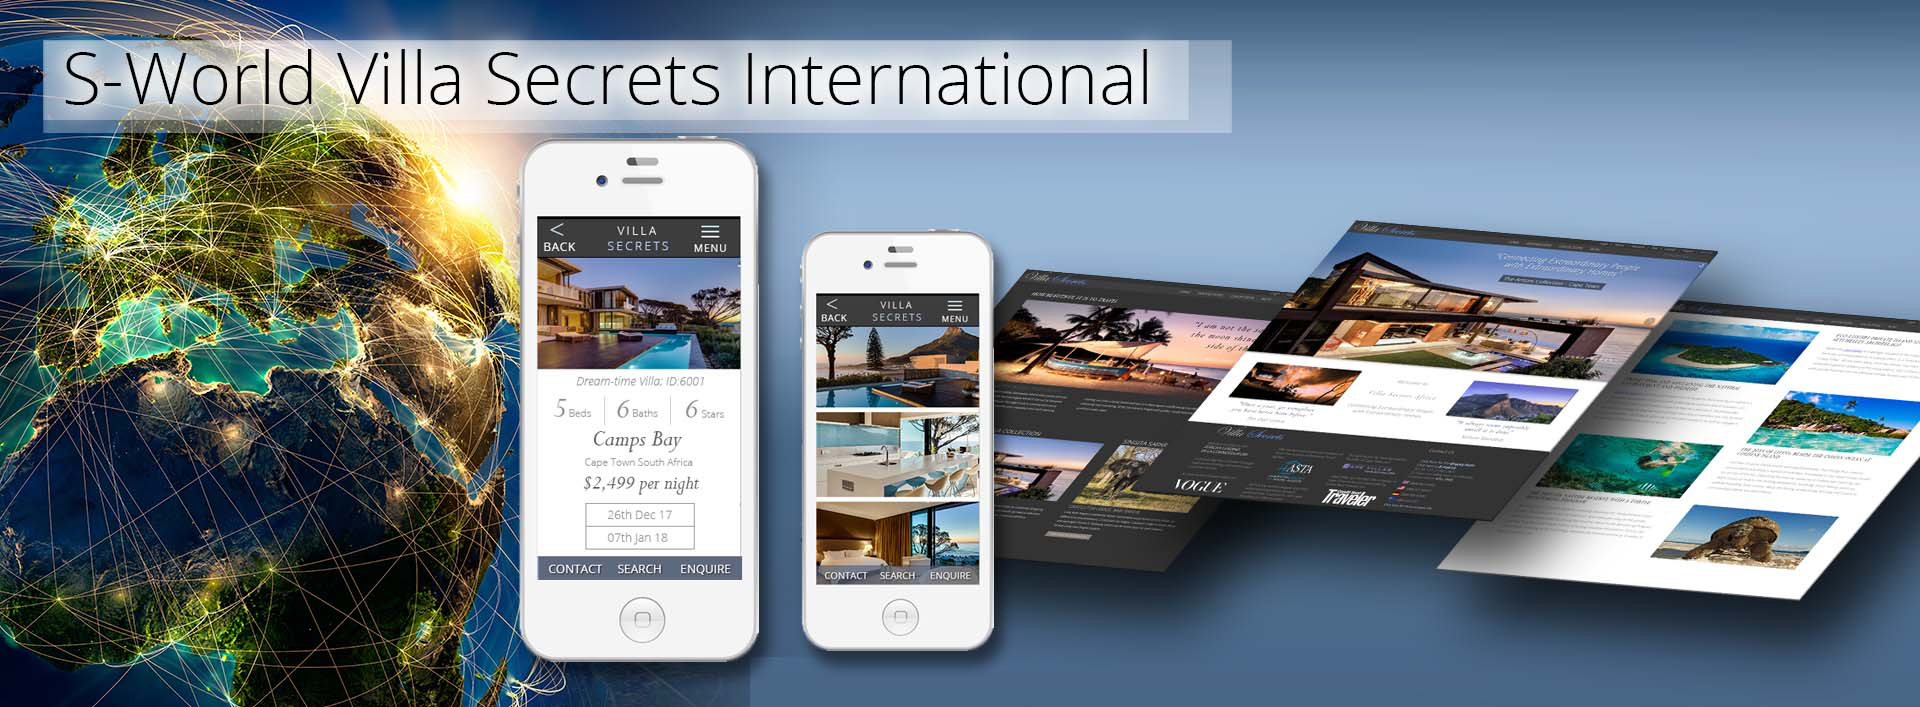 S-World Villa Secrets International